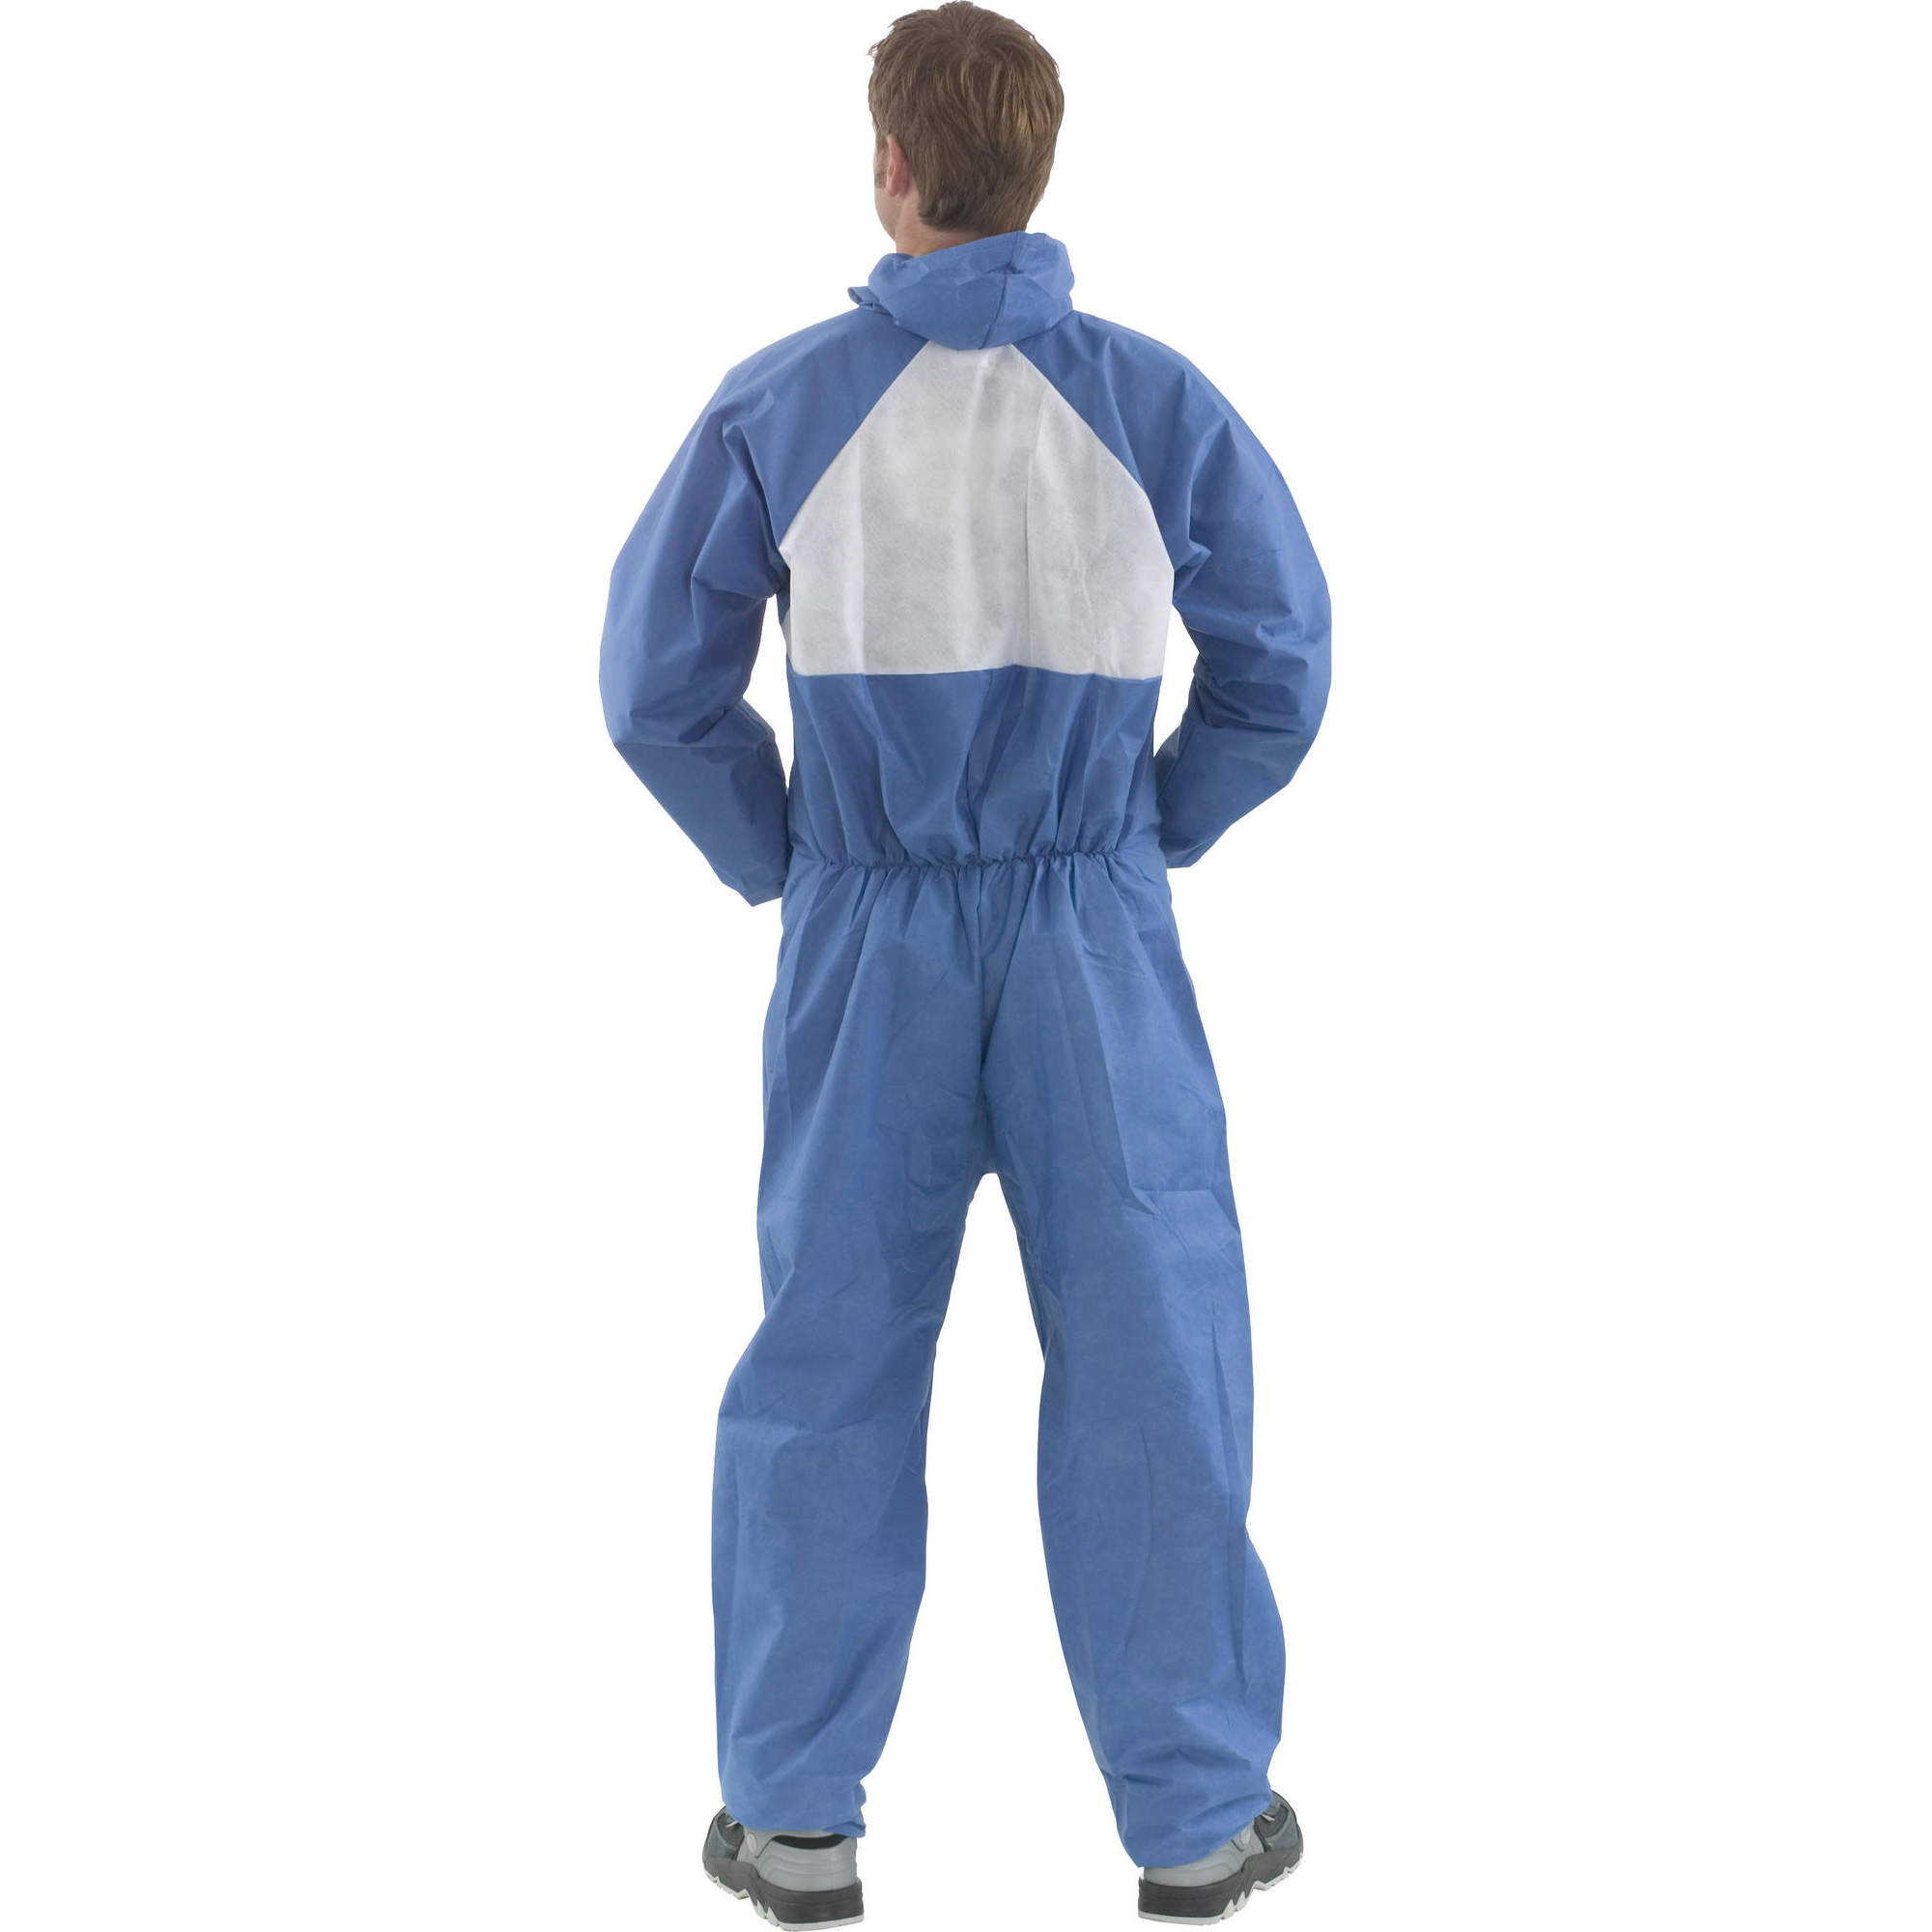 3M 4530 Fire Resistant Coveralls 3XL Blue/White Ref 4530XXXL [Pack 20] Up to 3 Day Leadtime